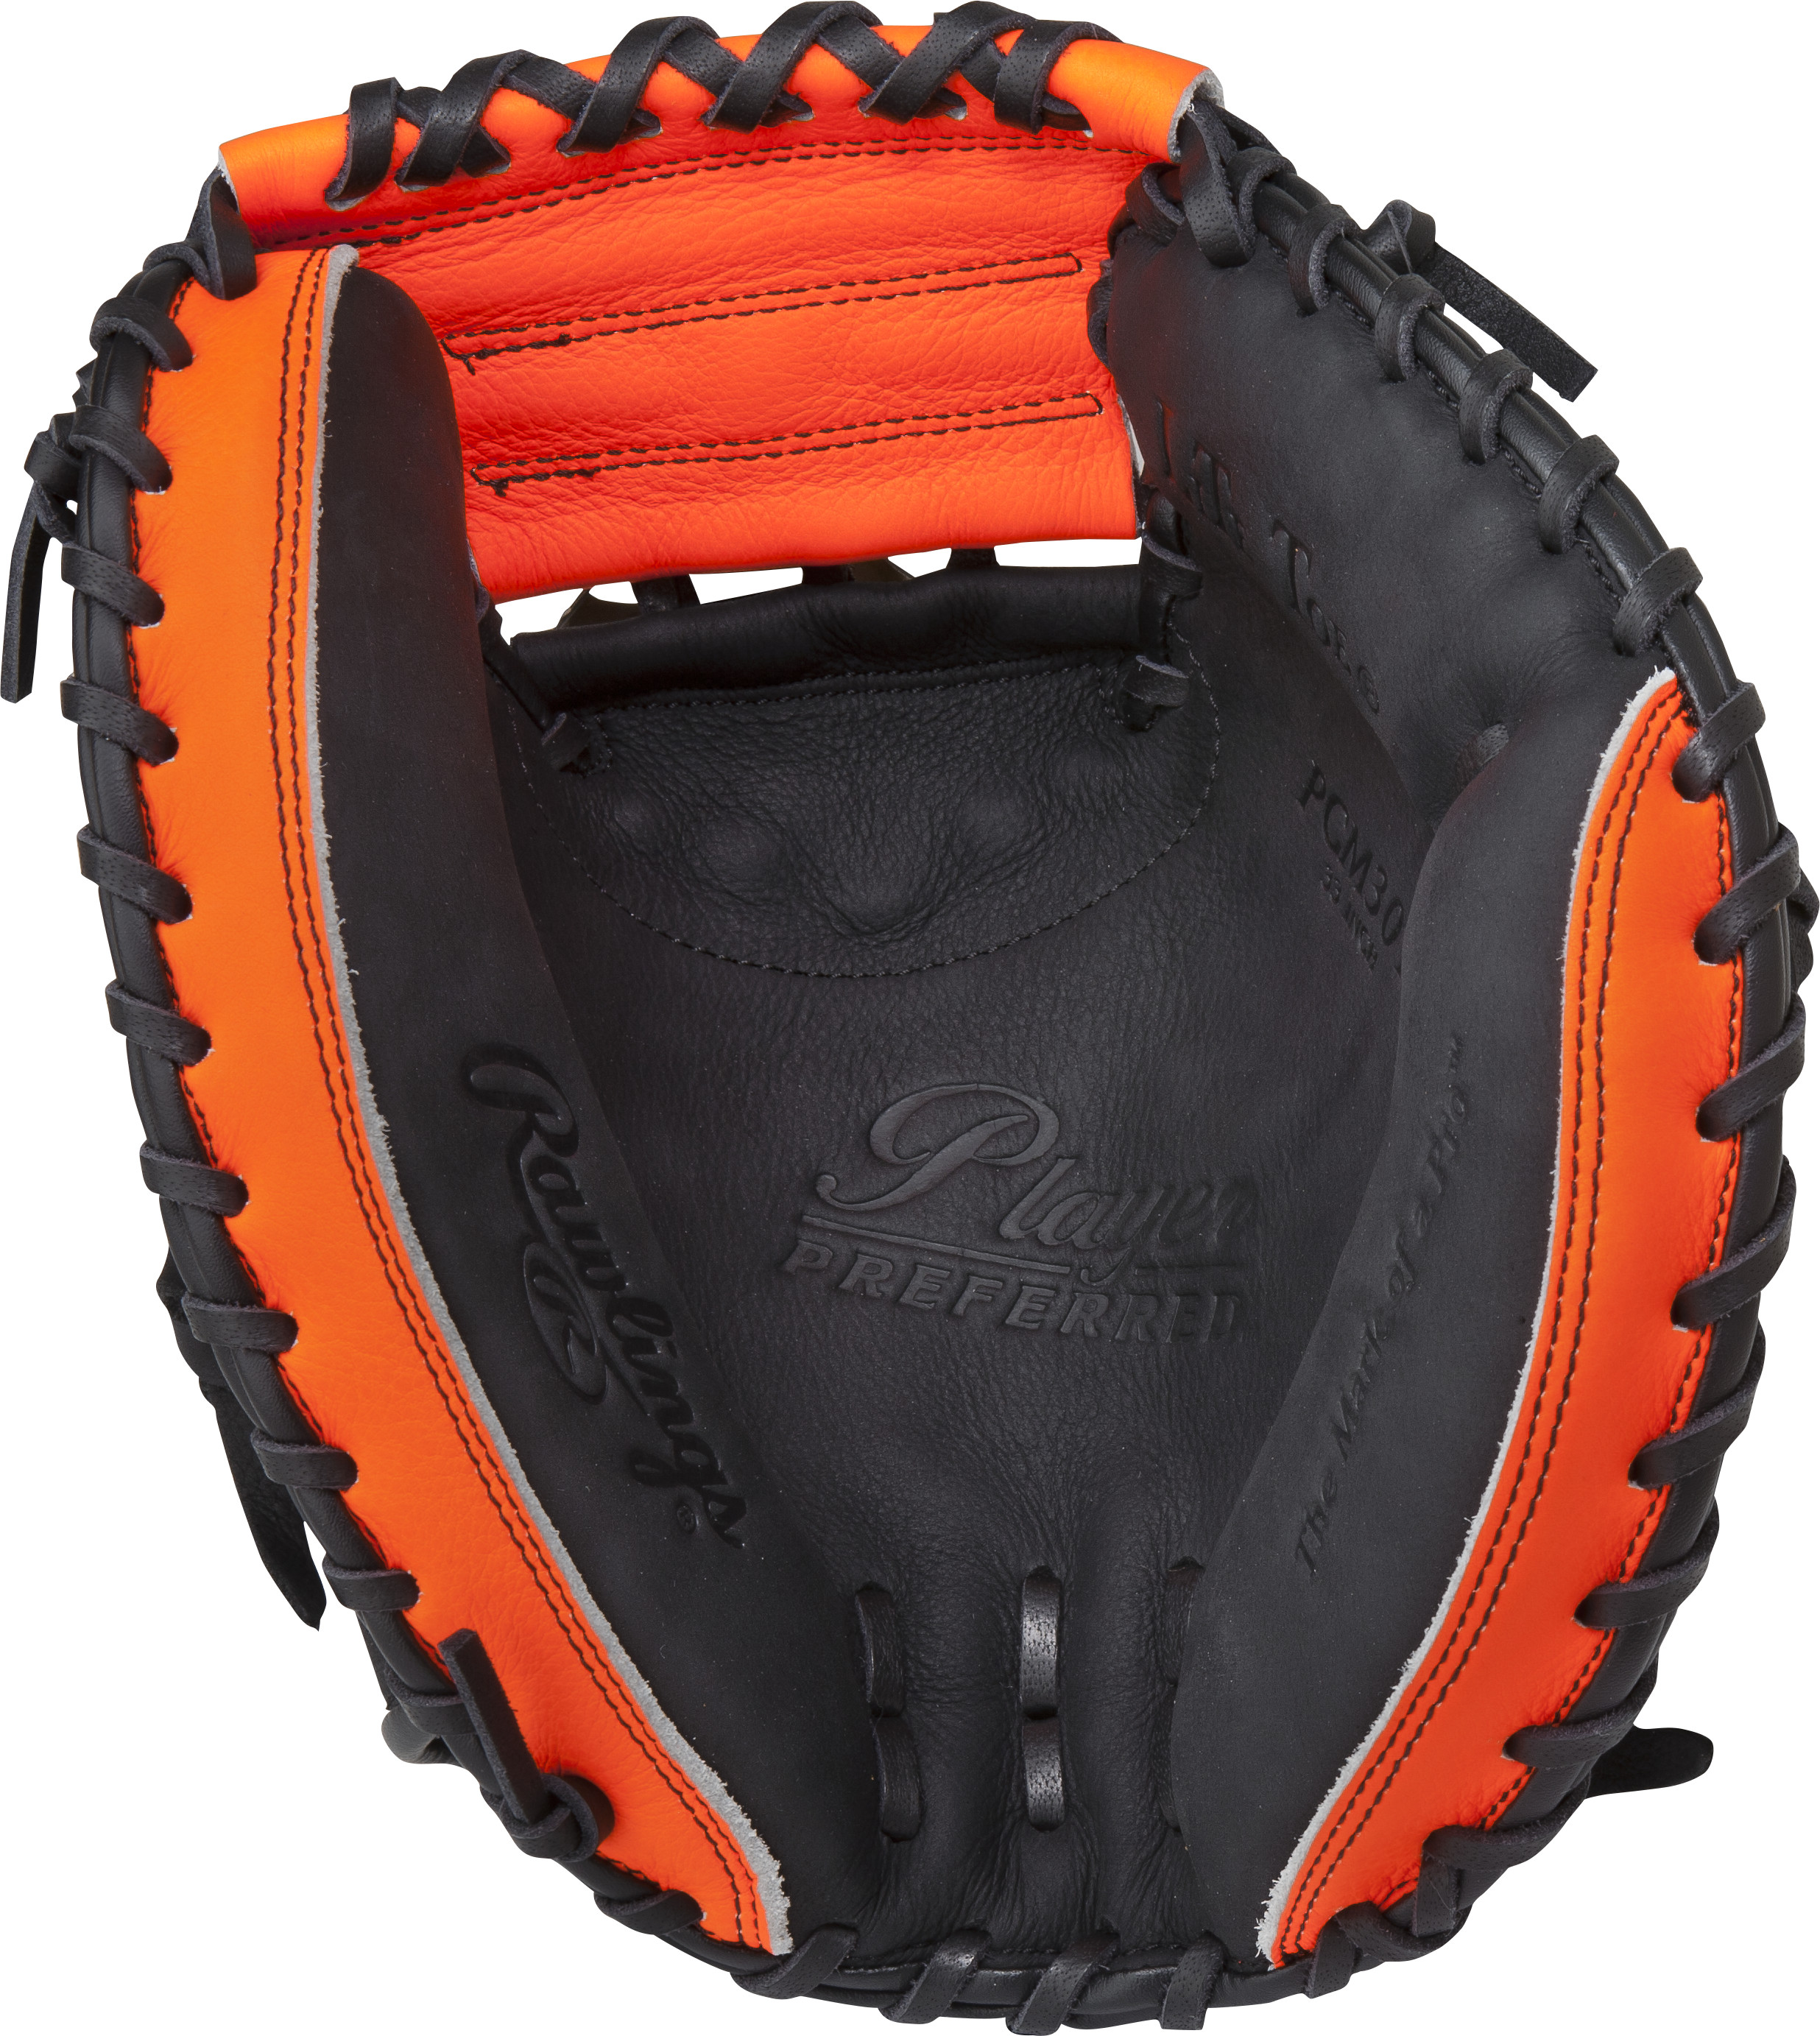 http://www.bestbatdeals.com/images/gloves/rawlings/PCM30T_palm.jpg